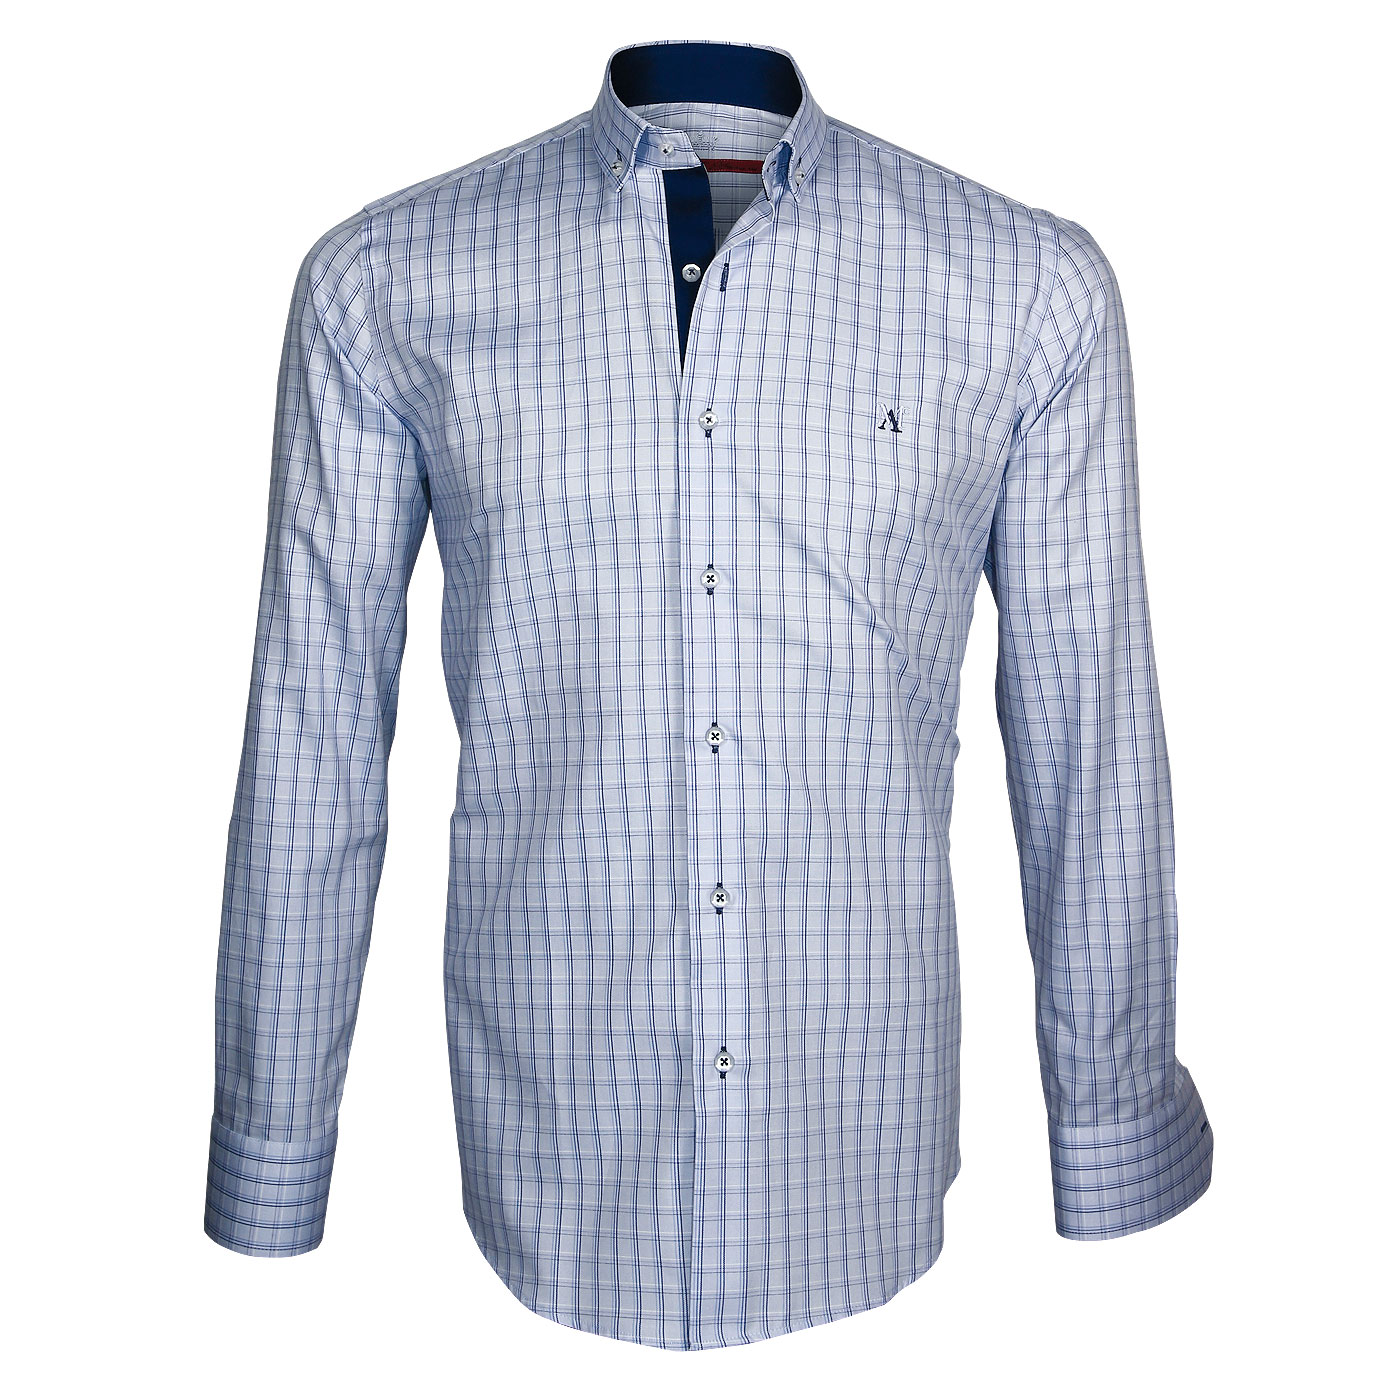 Slim Fit Shirt the Men Fashion way